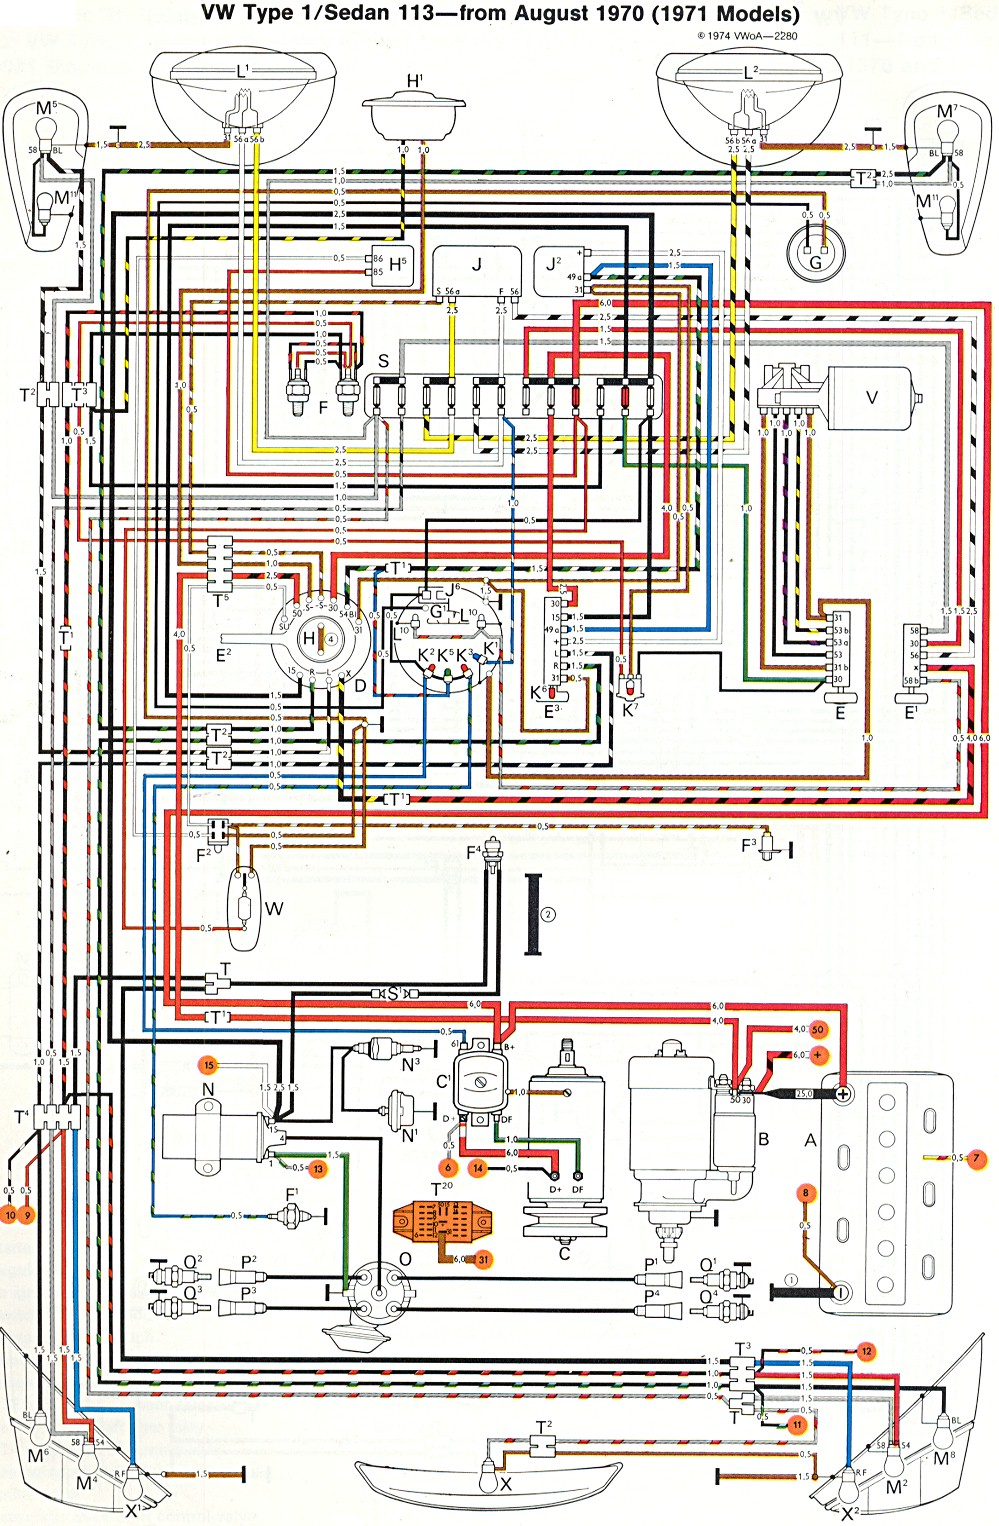 bug_super_71 1971 super beetle wiring diagram thegoldenbug com 1970 vw bug wiring diagram at pacquiaovsvargaslive.co